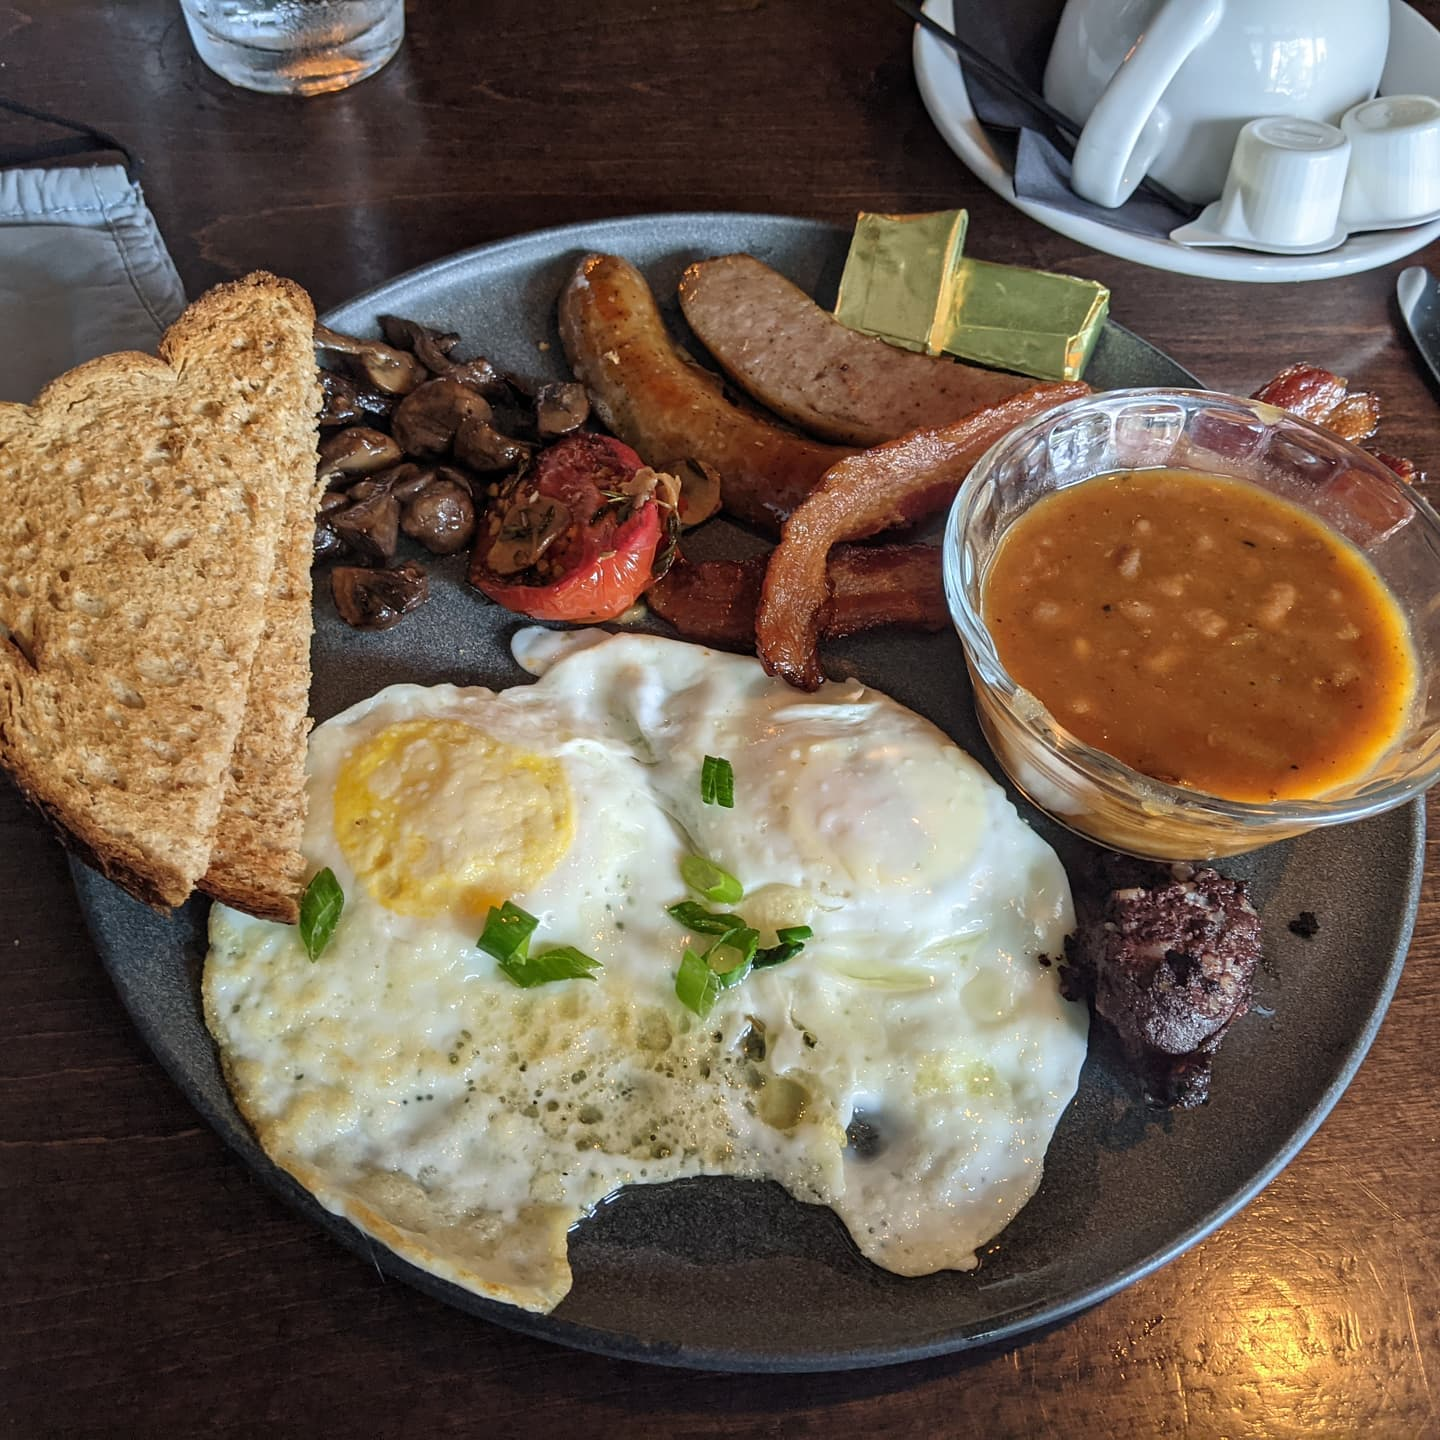 A Scottish breakfast at #scottisharms . Tasty local #stlouis #foodporn for this weekend. I need to come back more often #citylife